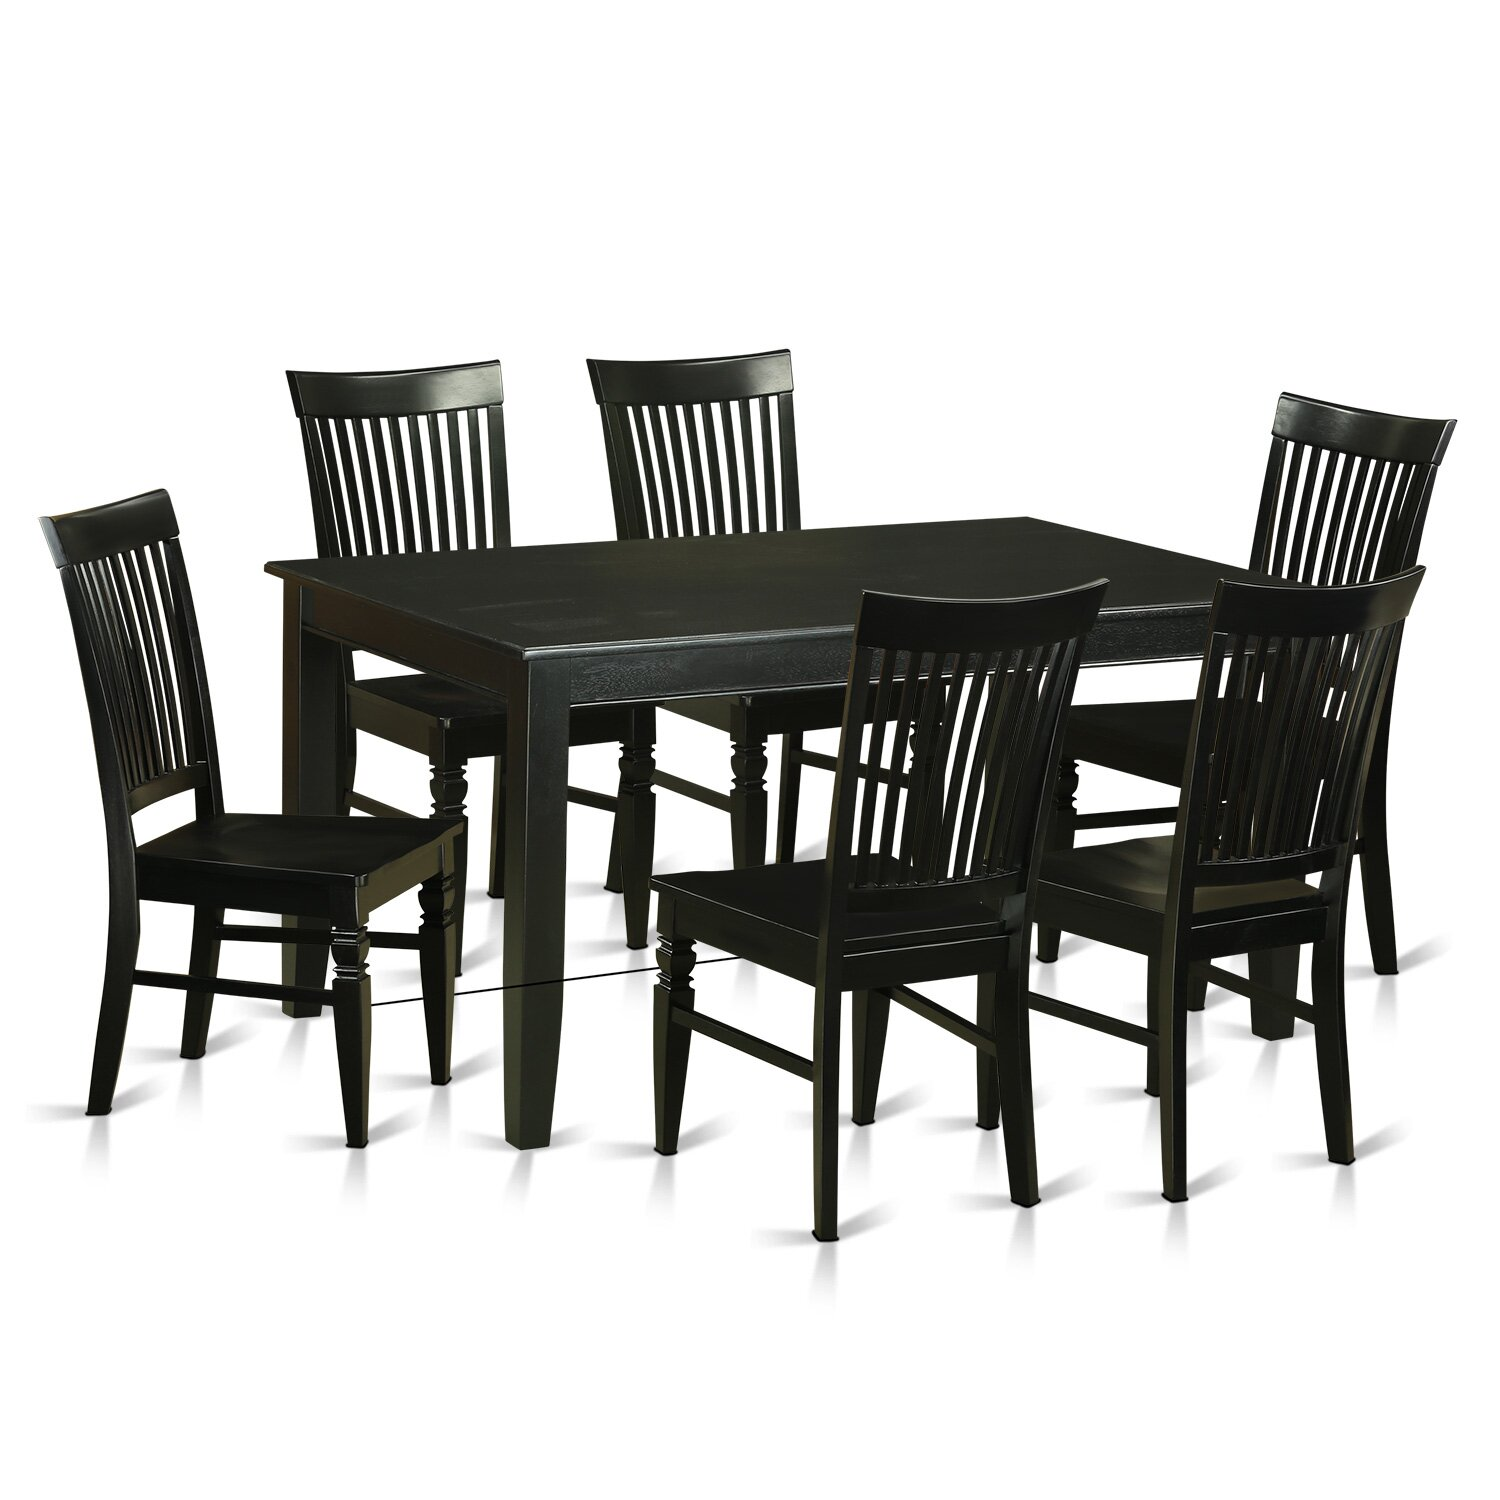 East west dudley 7 piece dining set wayfair for 7 piece dining set with bench